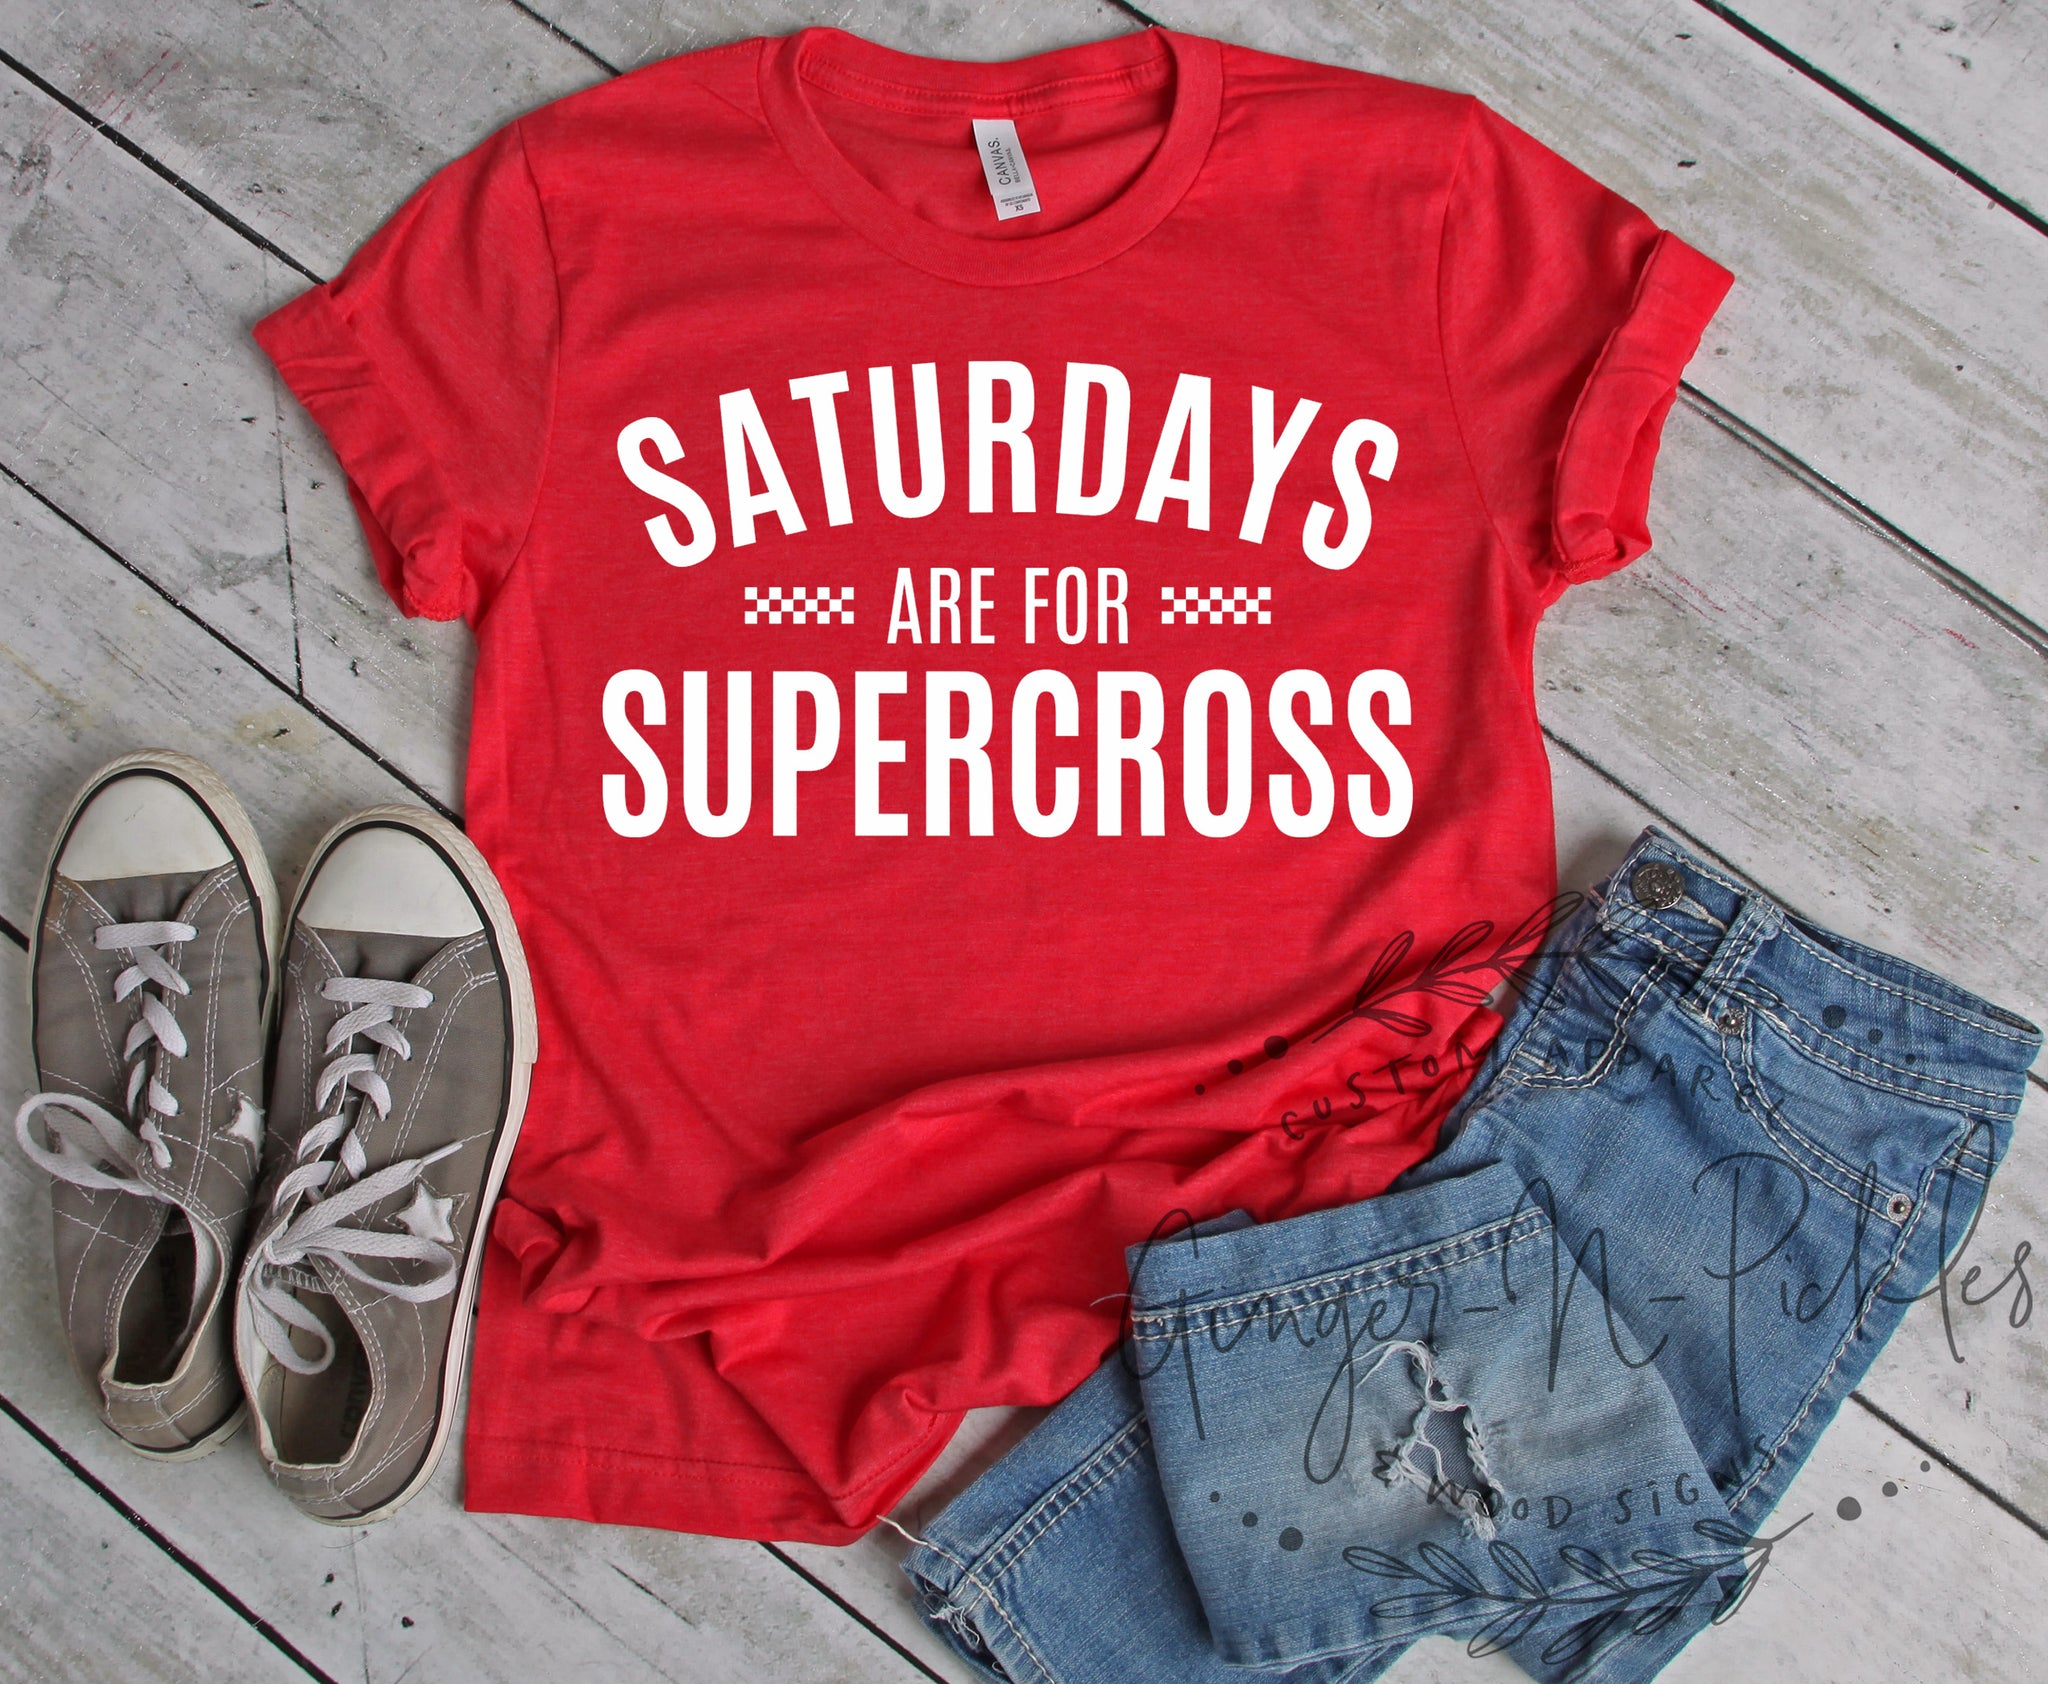 Saturdays Are For Supercross Shirt, Short Sleeve Unisex T-Shirt Dirt Bike Moto Racing Race Day Shirt Custom Supercross Shirt